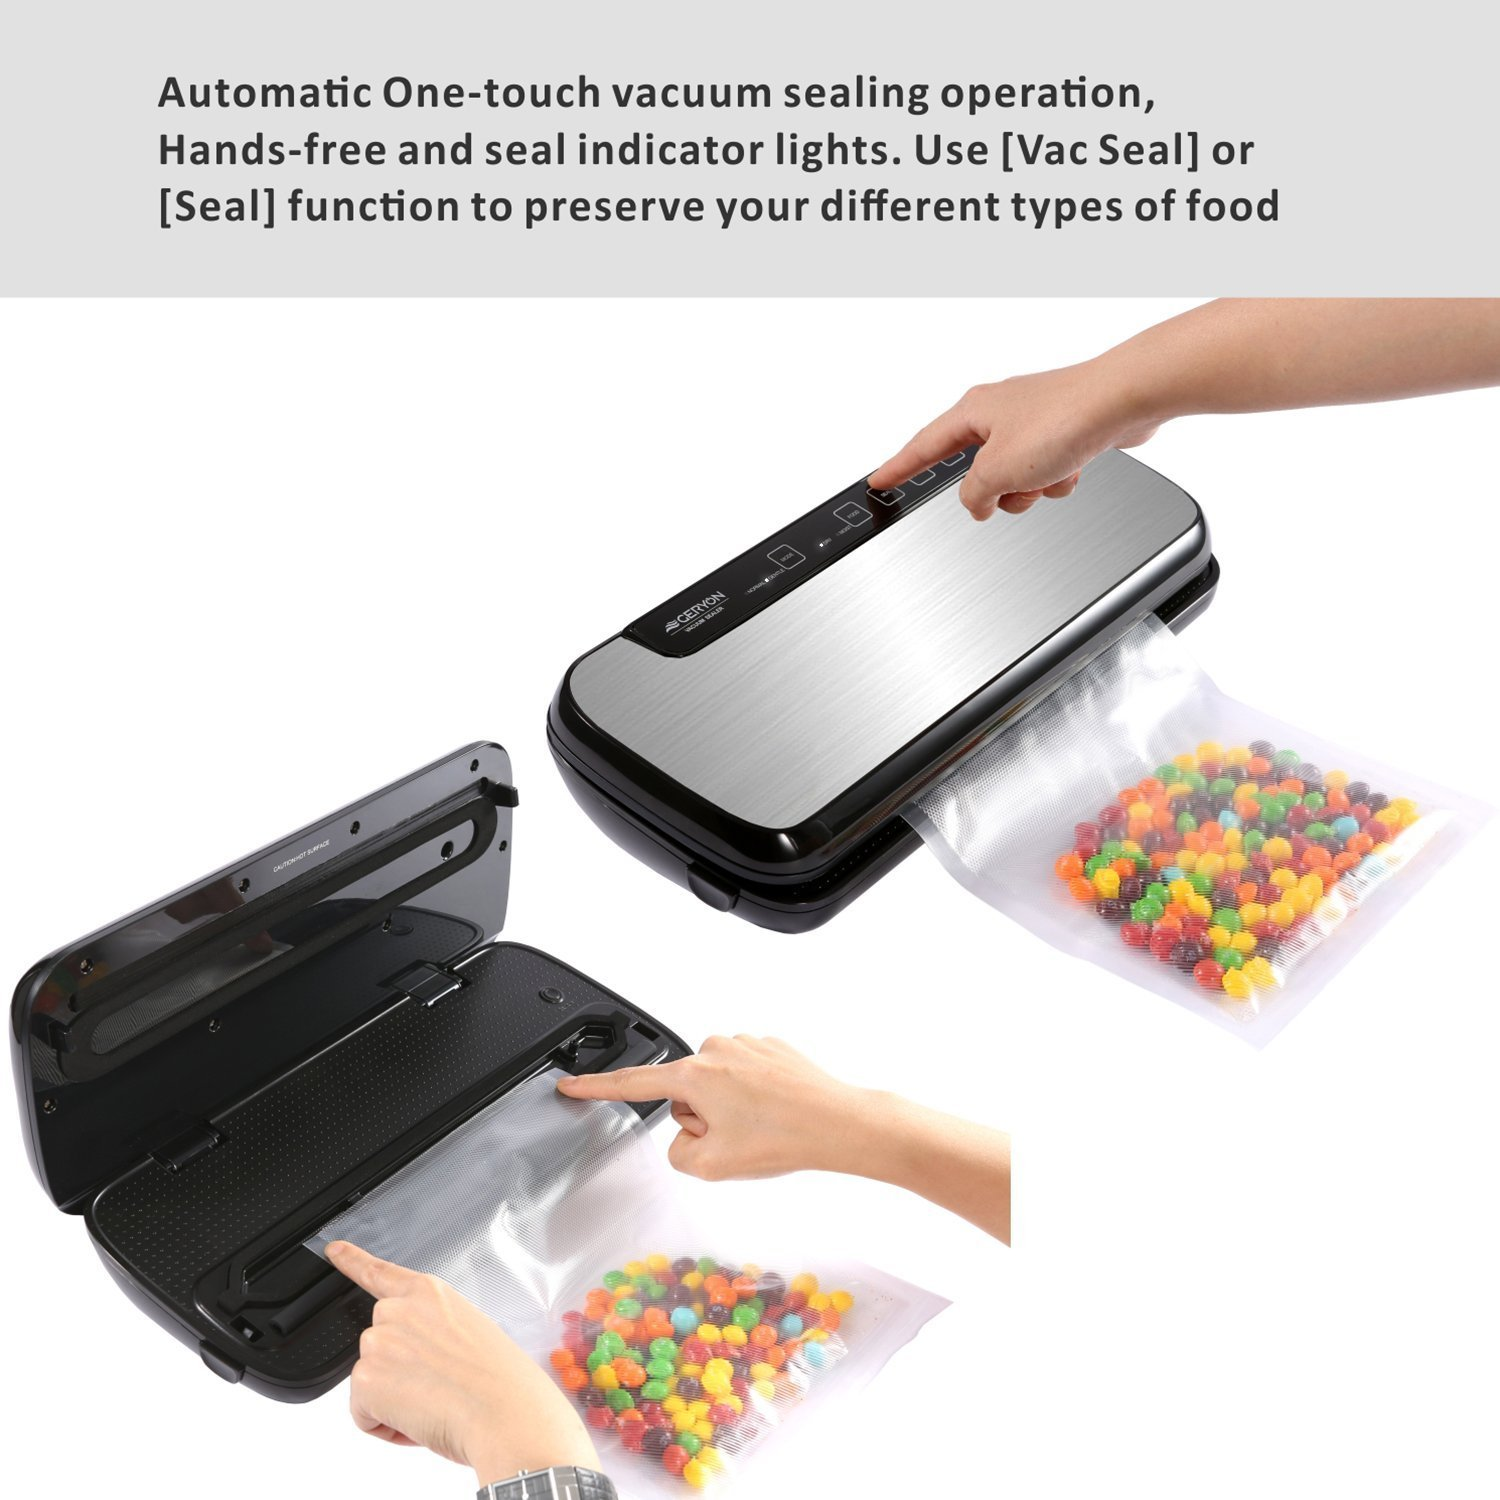 GERYON Vacuum Sealer, Automatic Food Sealer Machine with Starter Kit of Saver Roll, Bags and Hose for Food Preservation by Geryon (Image #4)